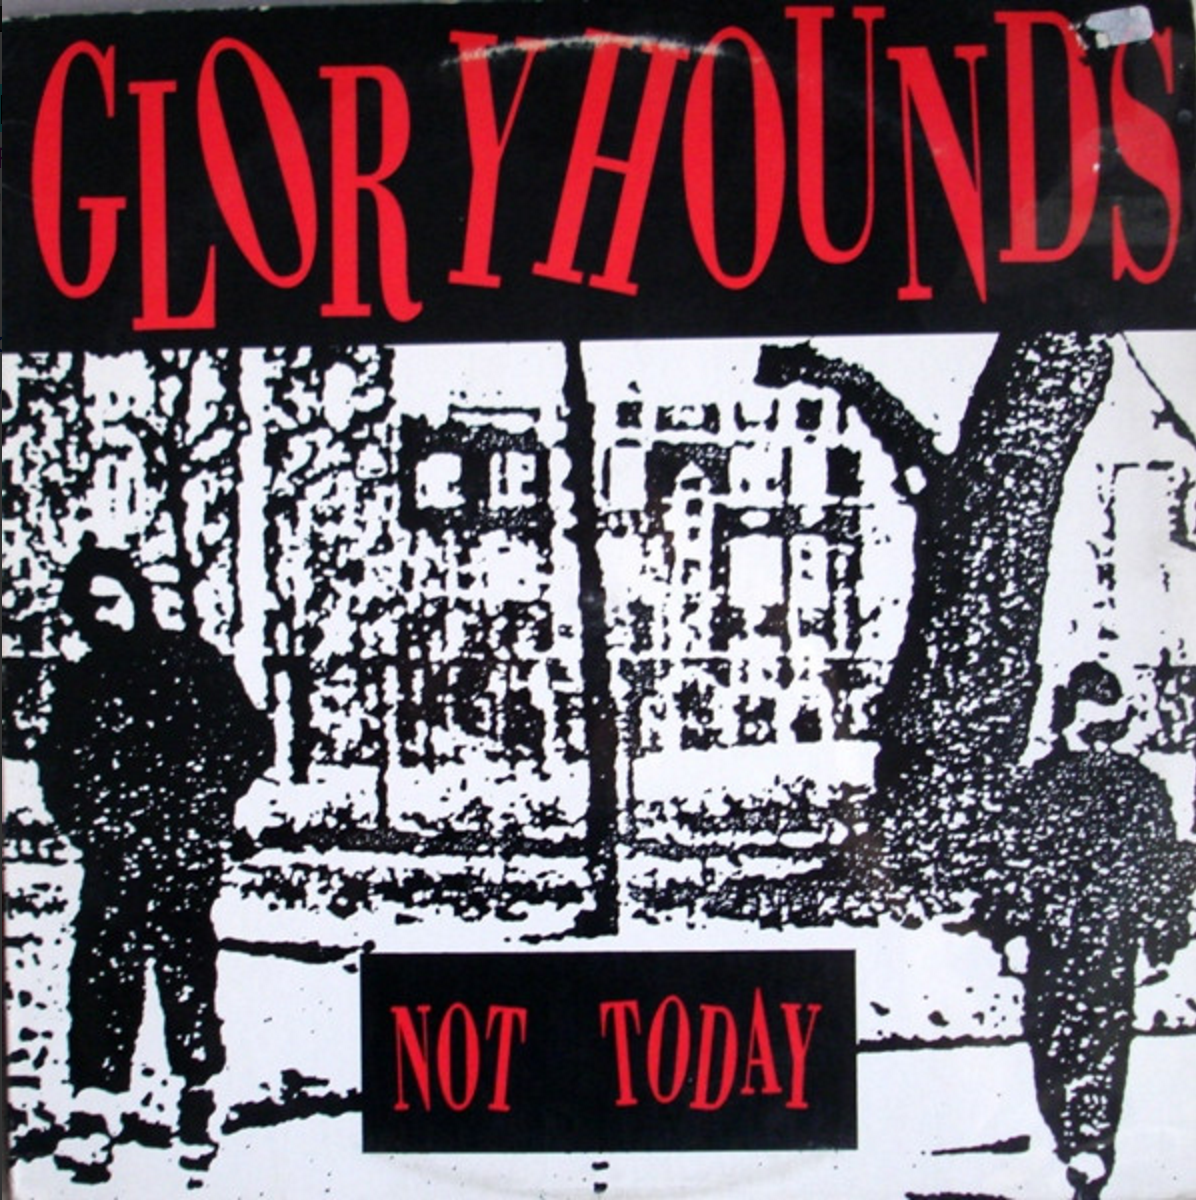 Glory Hounds Not Today Album Artwork